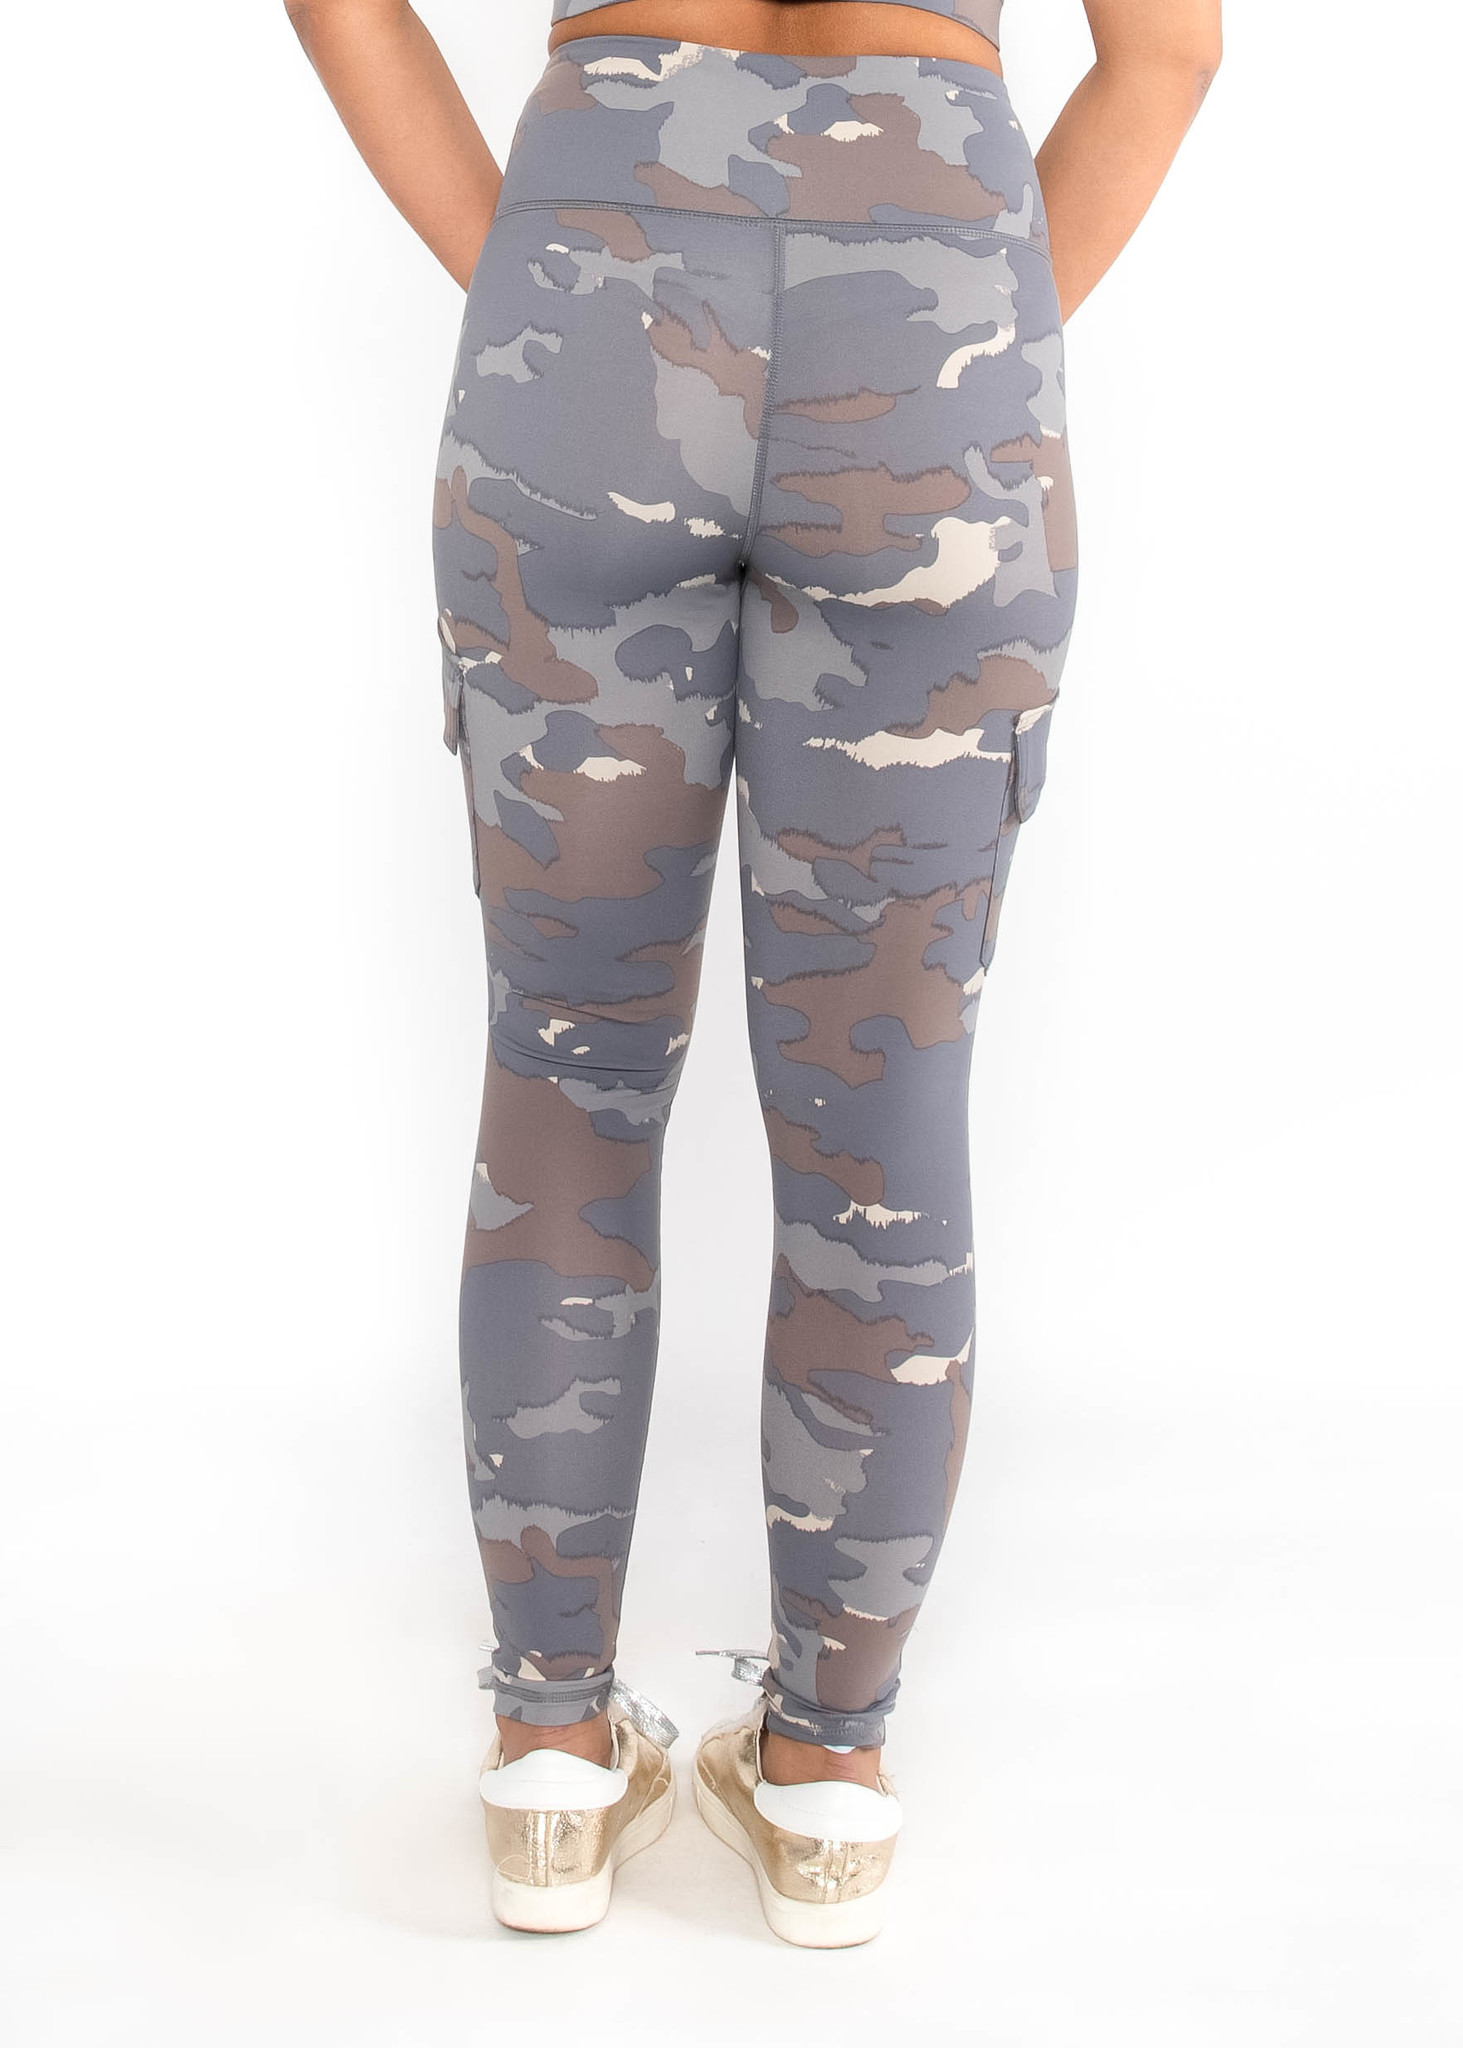 SIDEKICK CAMO PRINT LEGGINGS